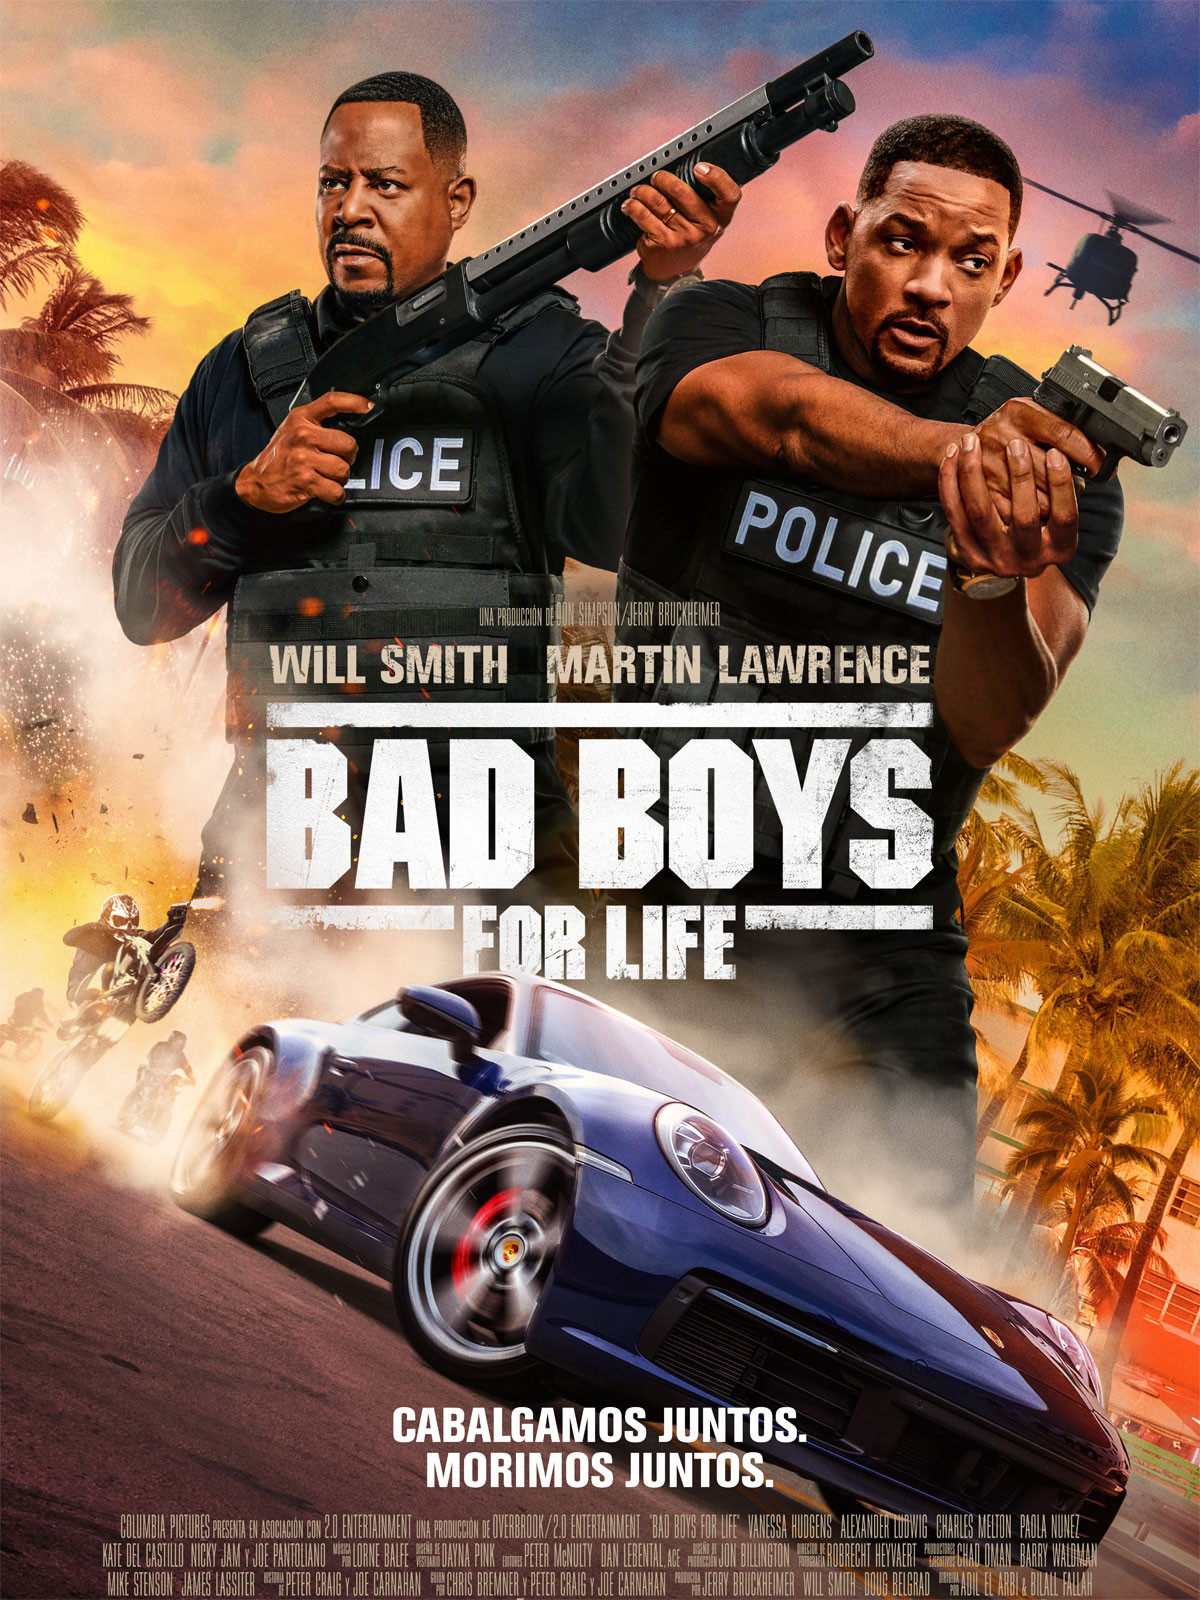 BAD BOYS FOR LIFE CARTEL WILL SMITH 2020